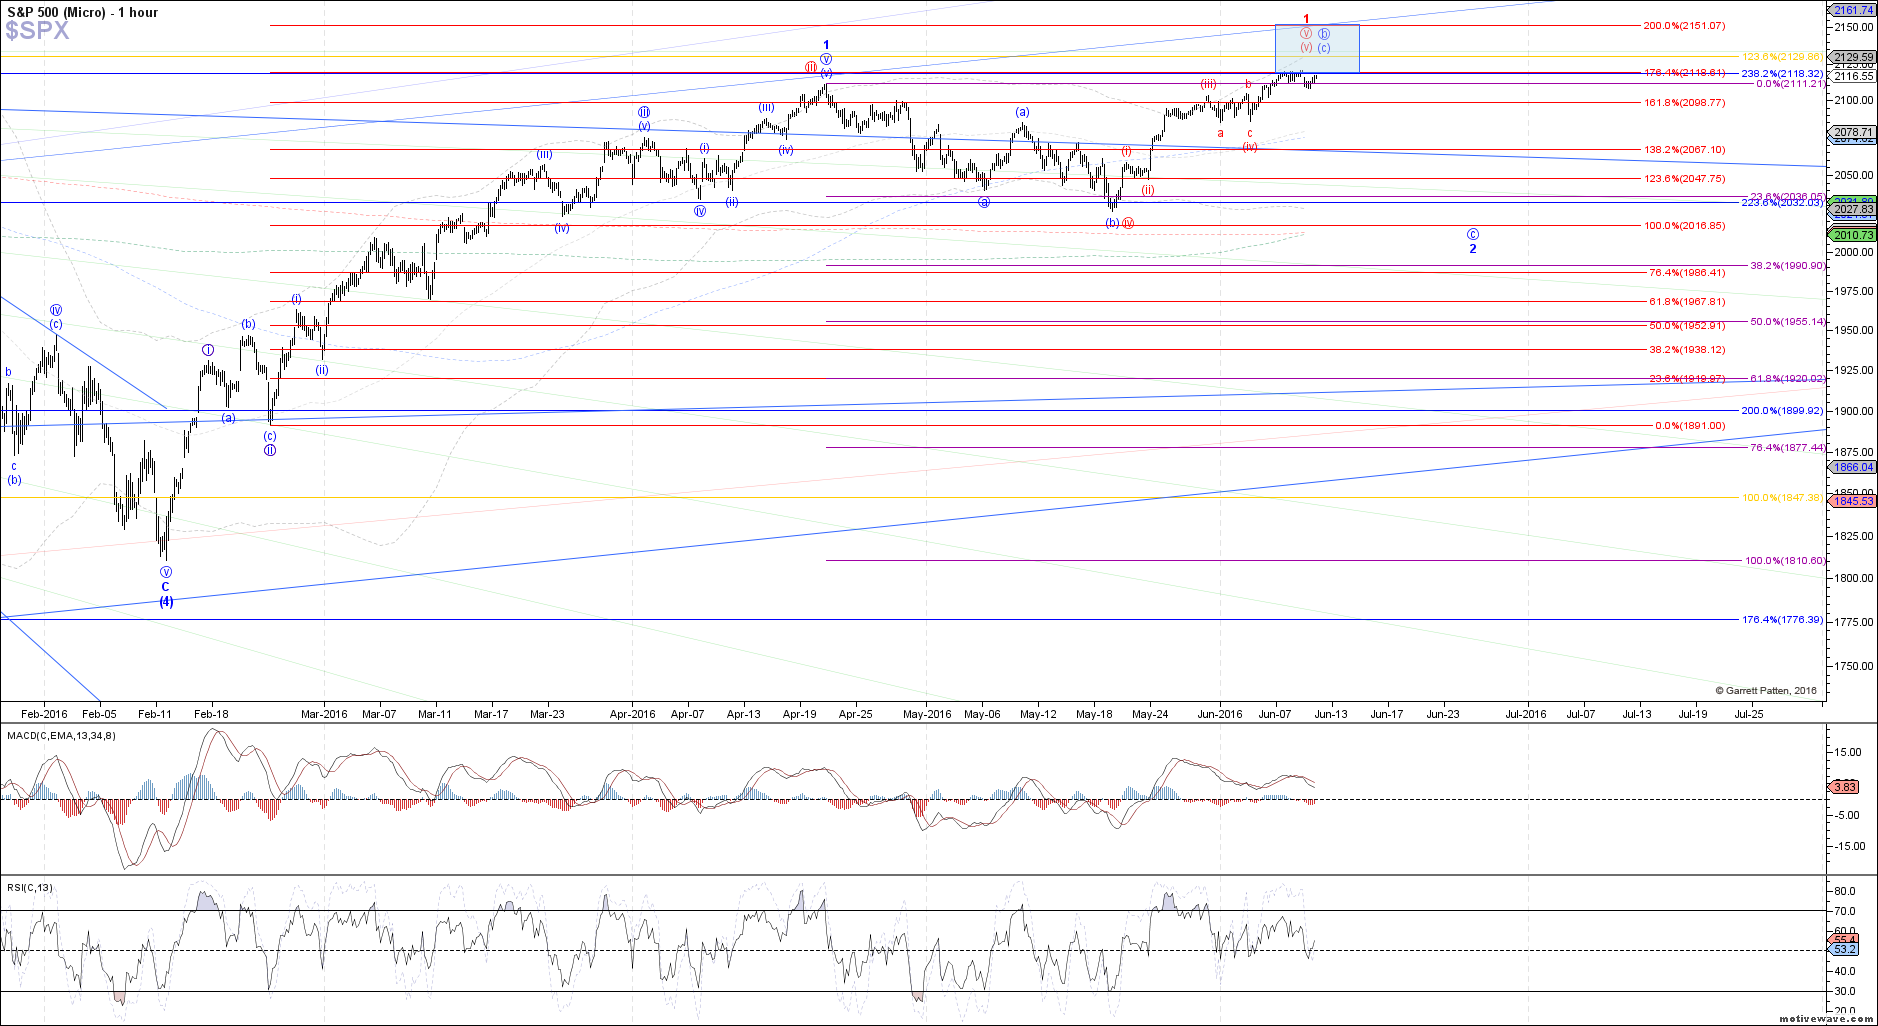 $SPX - Micro - Jun-09 1335 PM (1 hour)